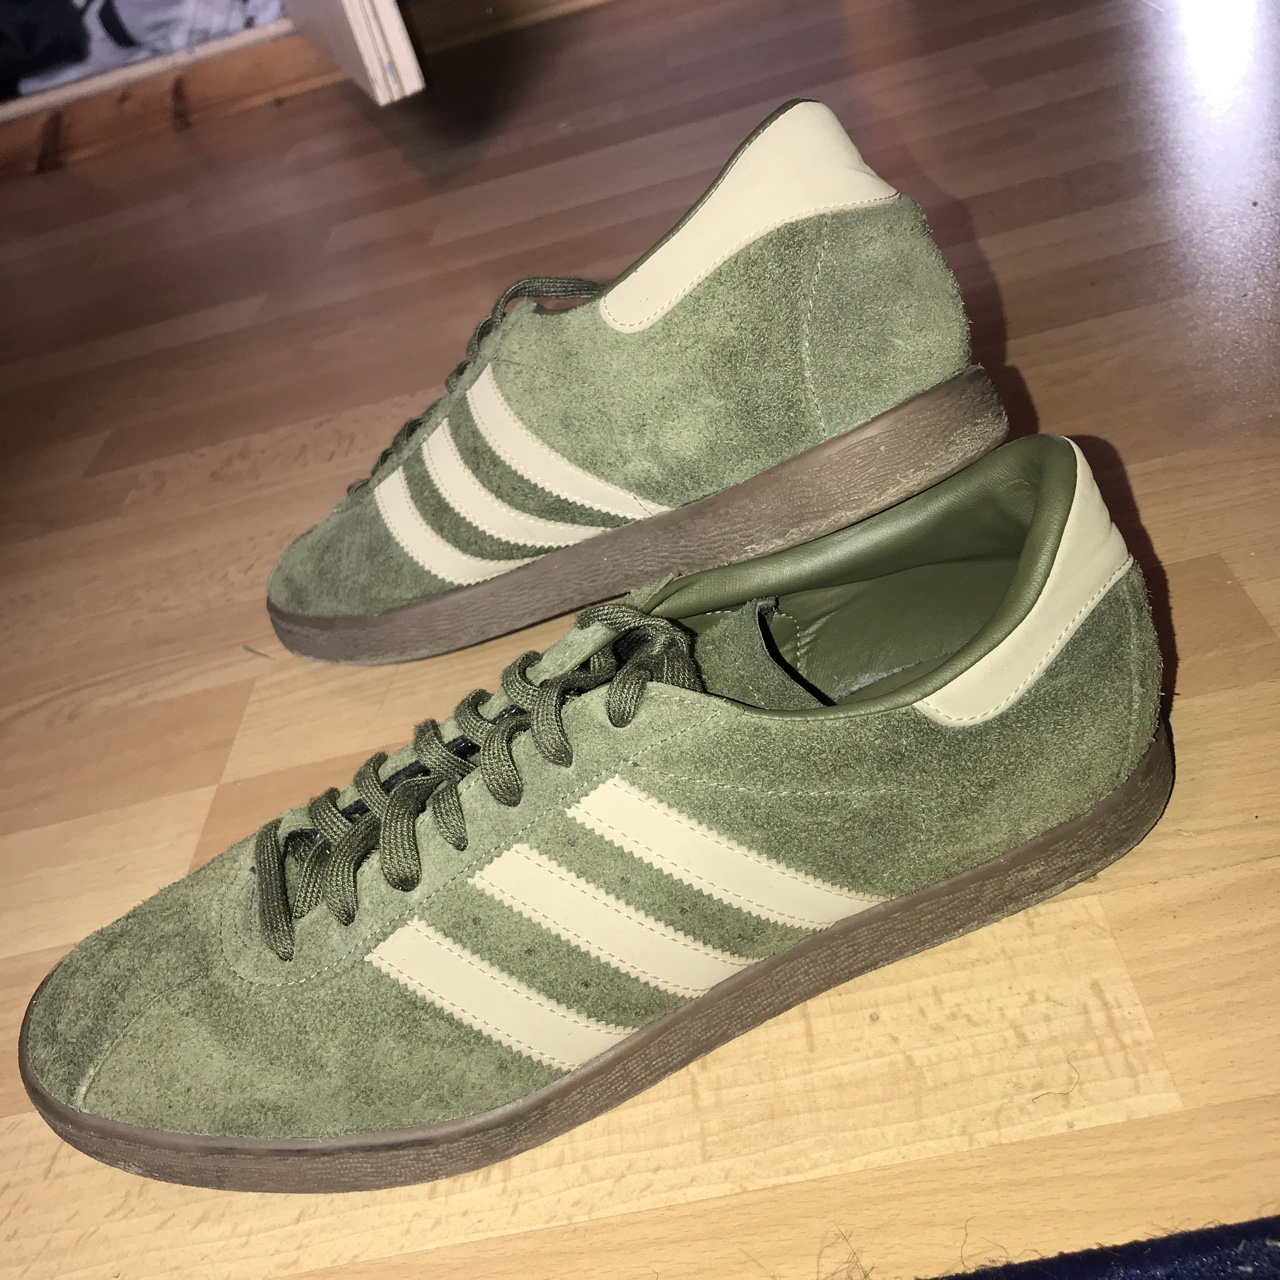 Earth Green Adidas Tobacco 2013 For